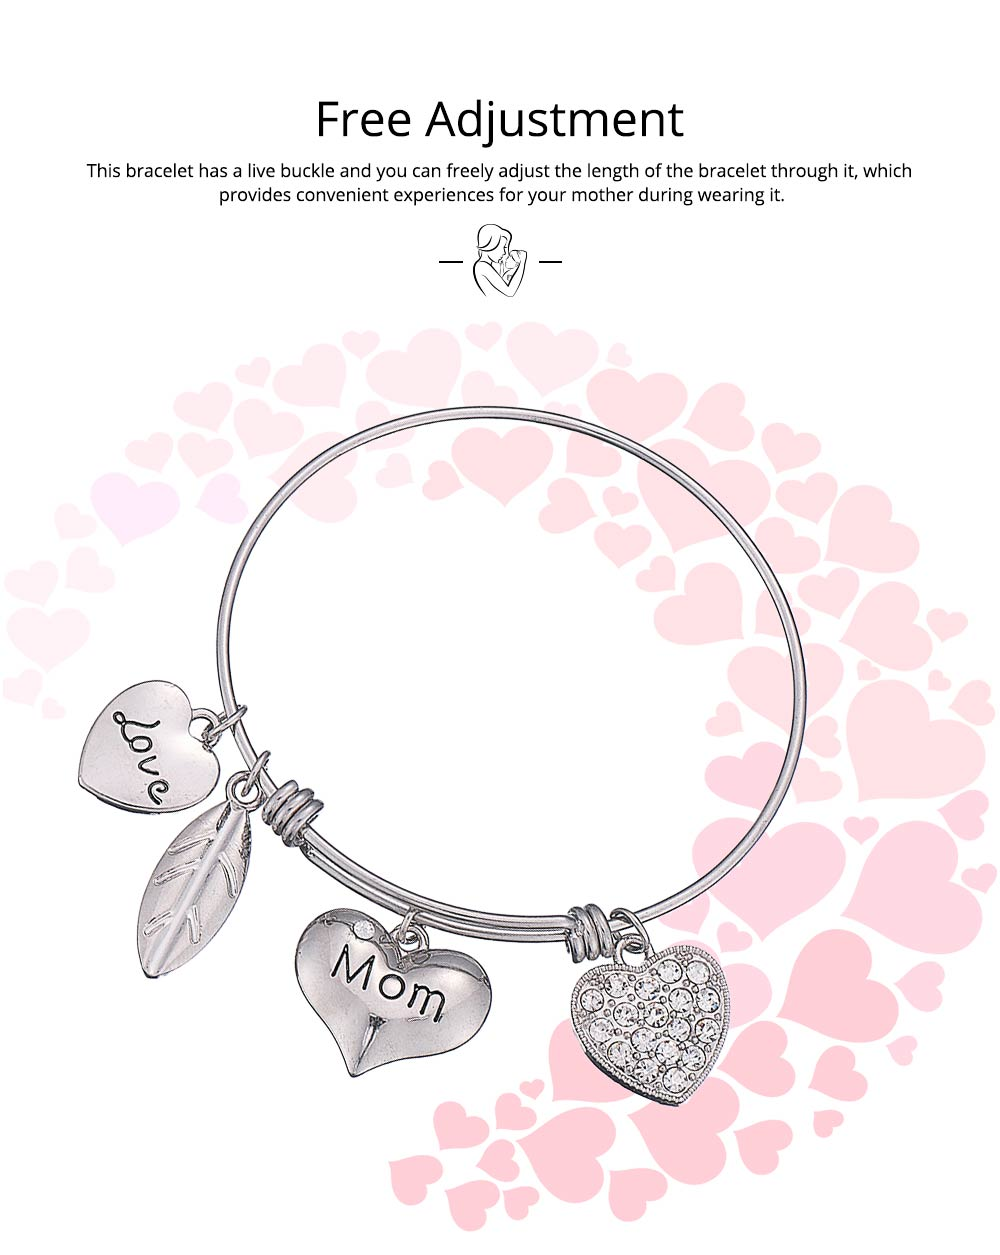 Stylish Heart Model Diamond Drilling Stainless Steel Bracelet, Mother Love Letter Electroplating Adjustable Silver Chain Bangle for Mothers 3